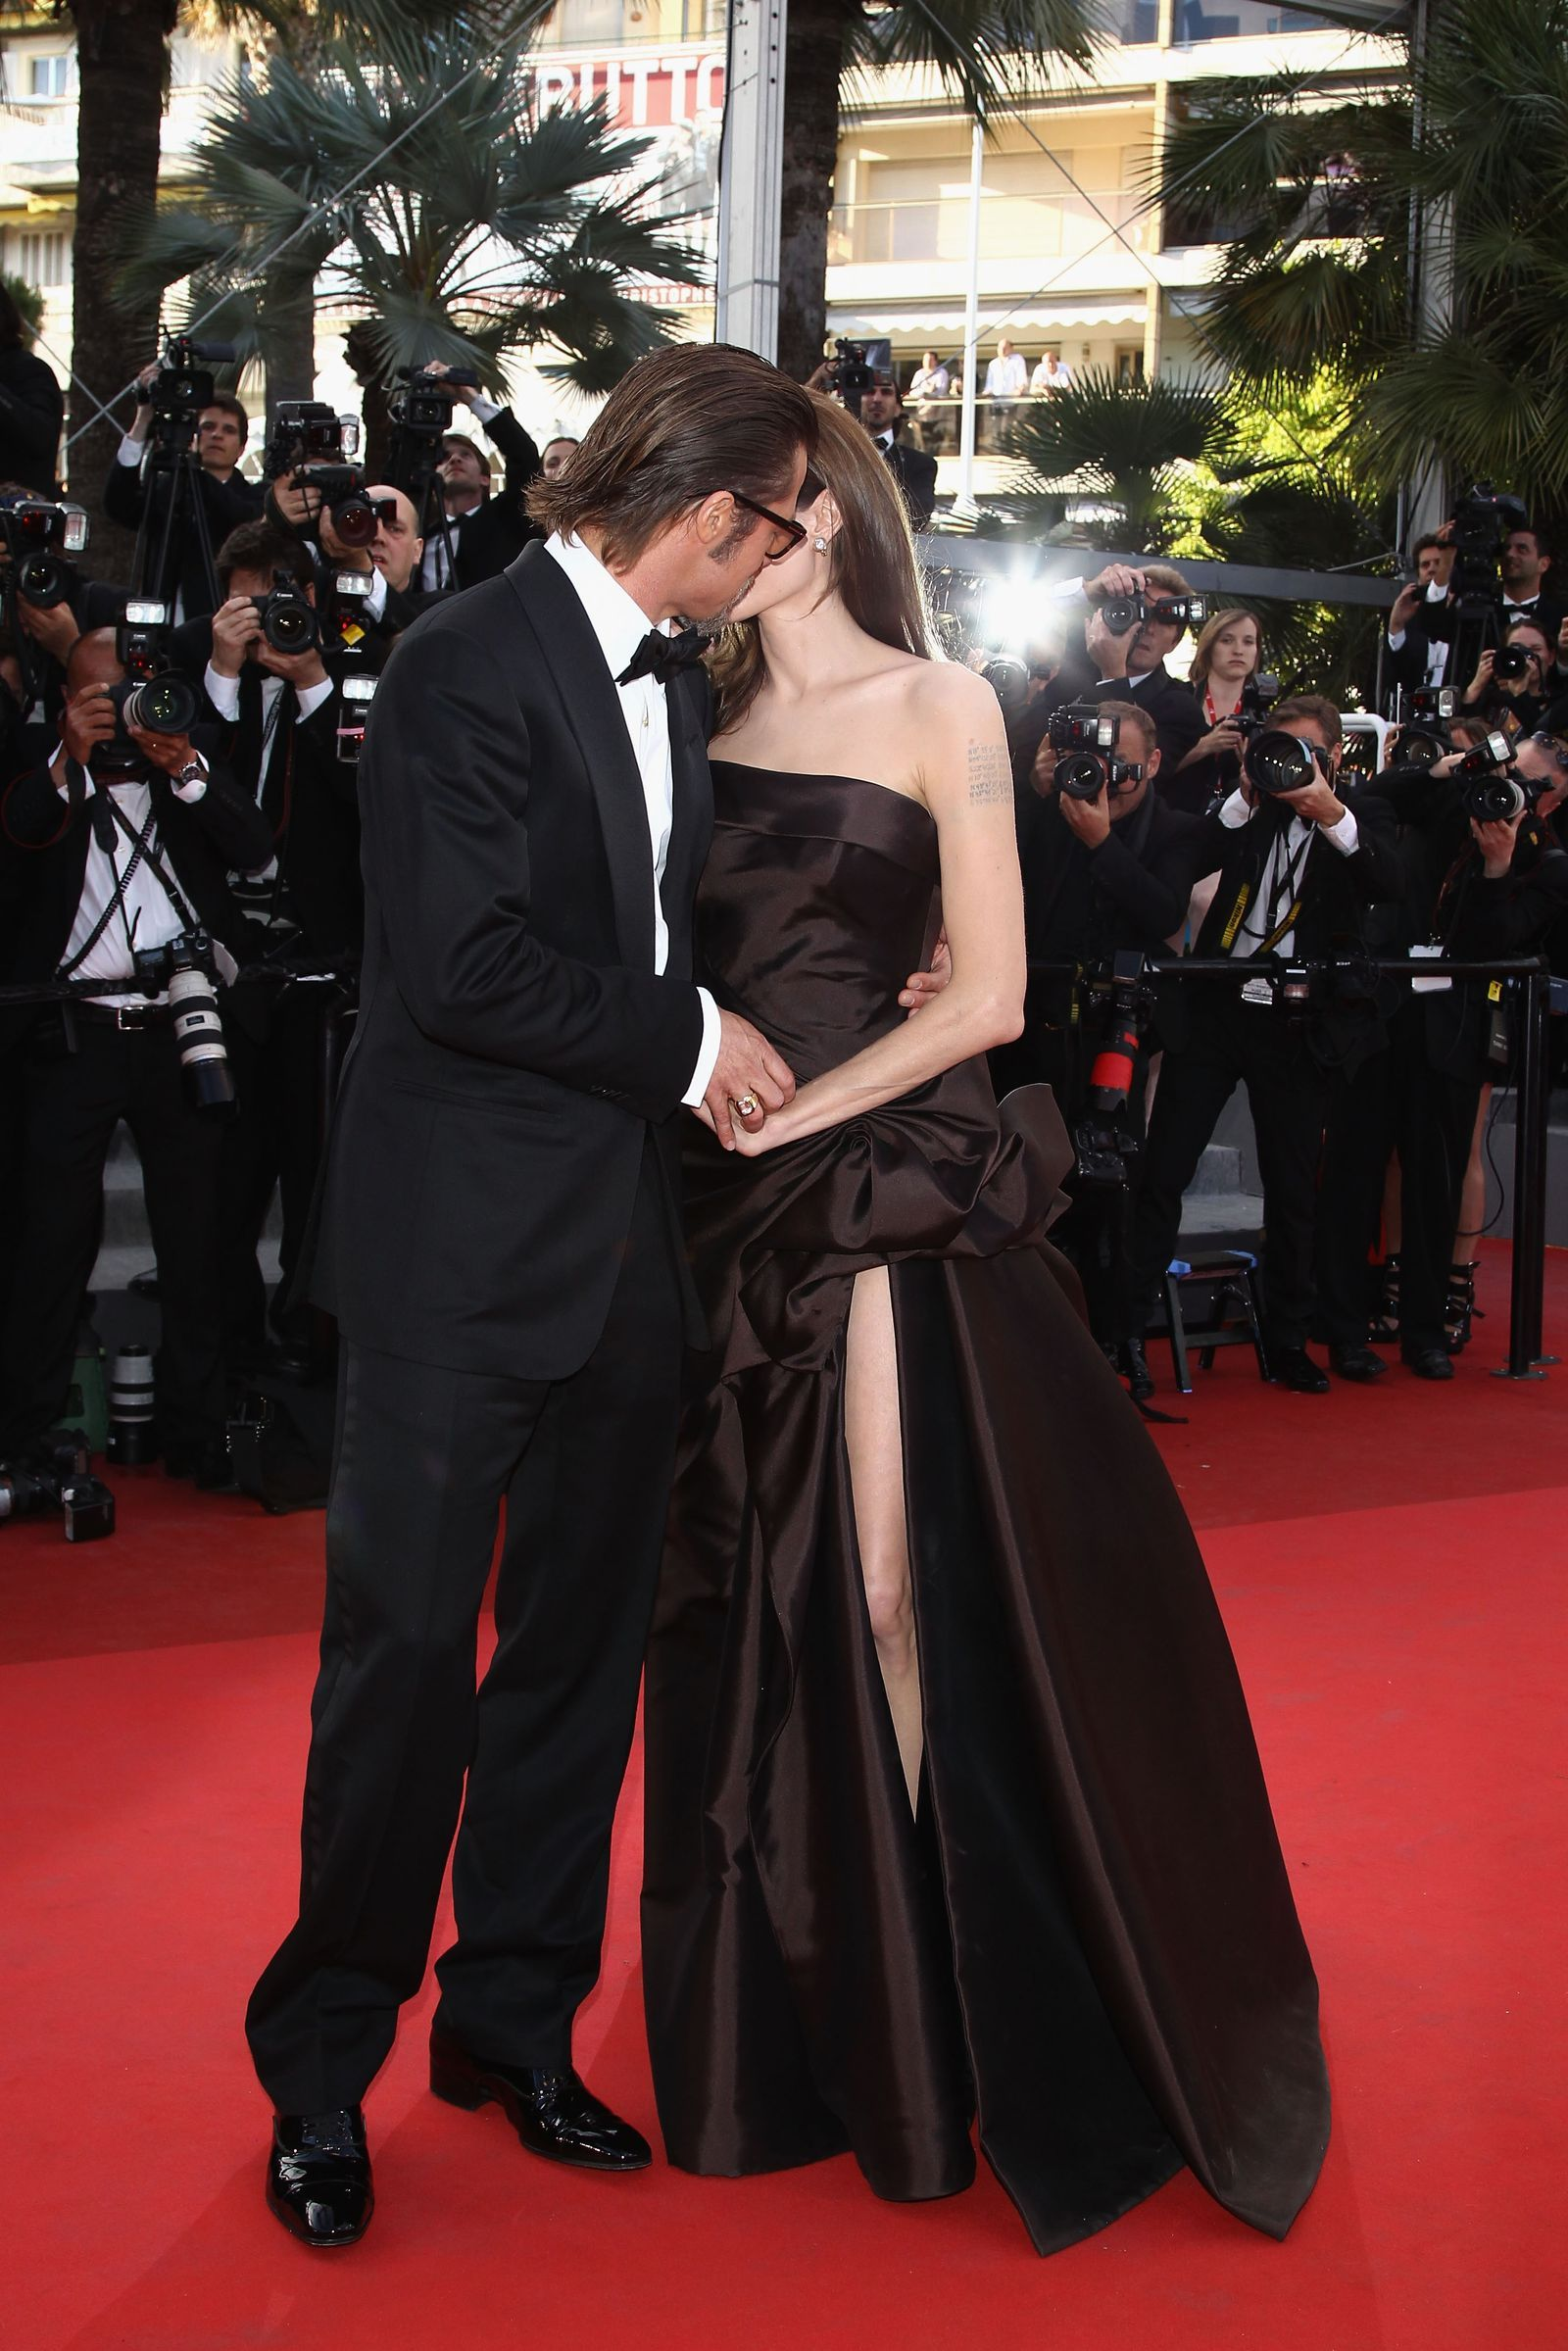 38 Of The Most Memorable Red Carpet Kisses Of All Time In 2020 Brad And Angelina Brad Pitt And Angelina Jolie Brad Pitt